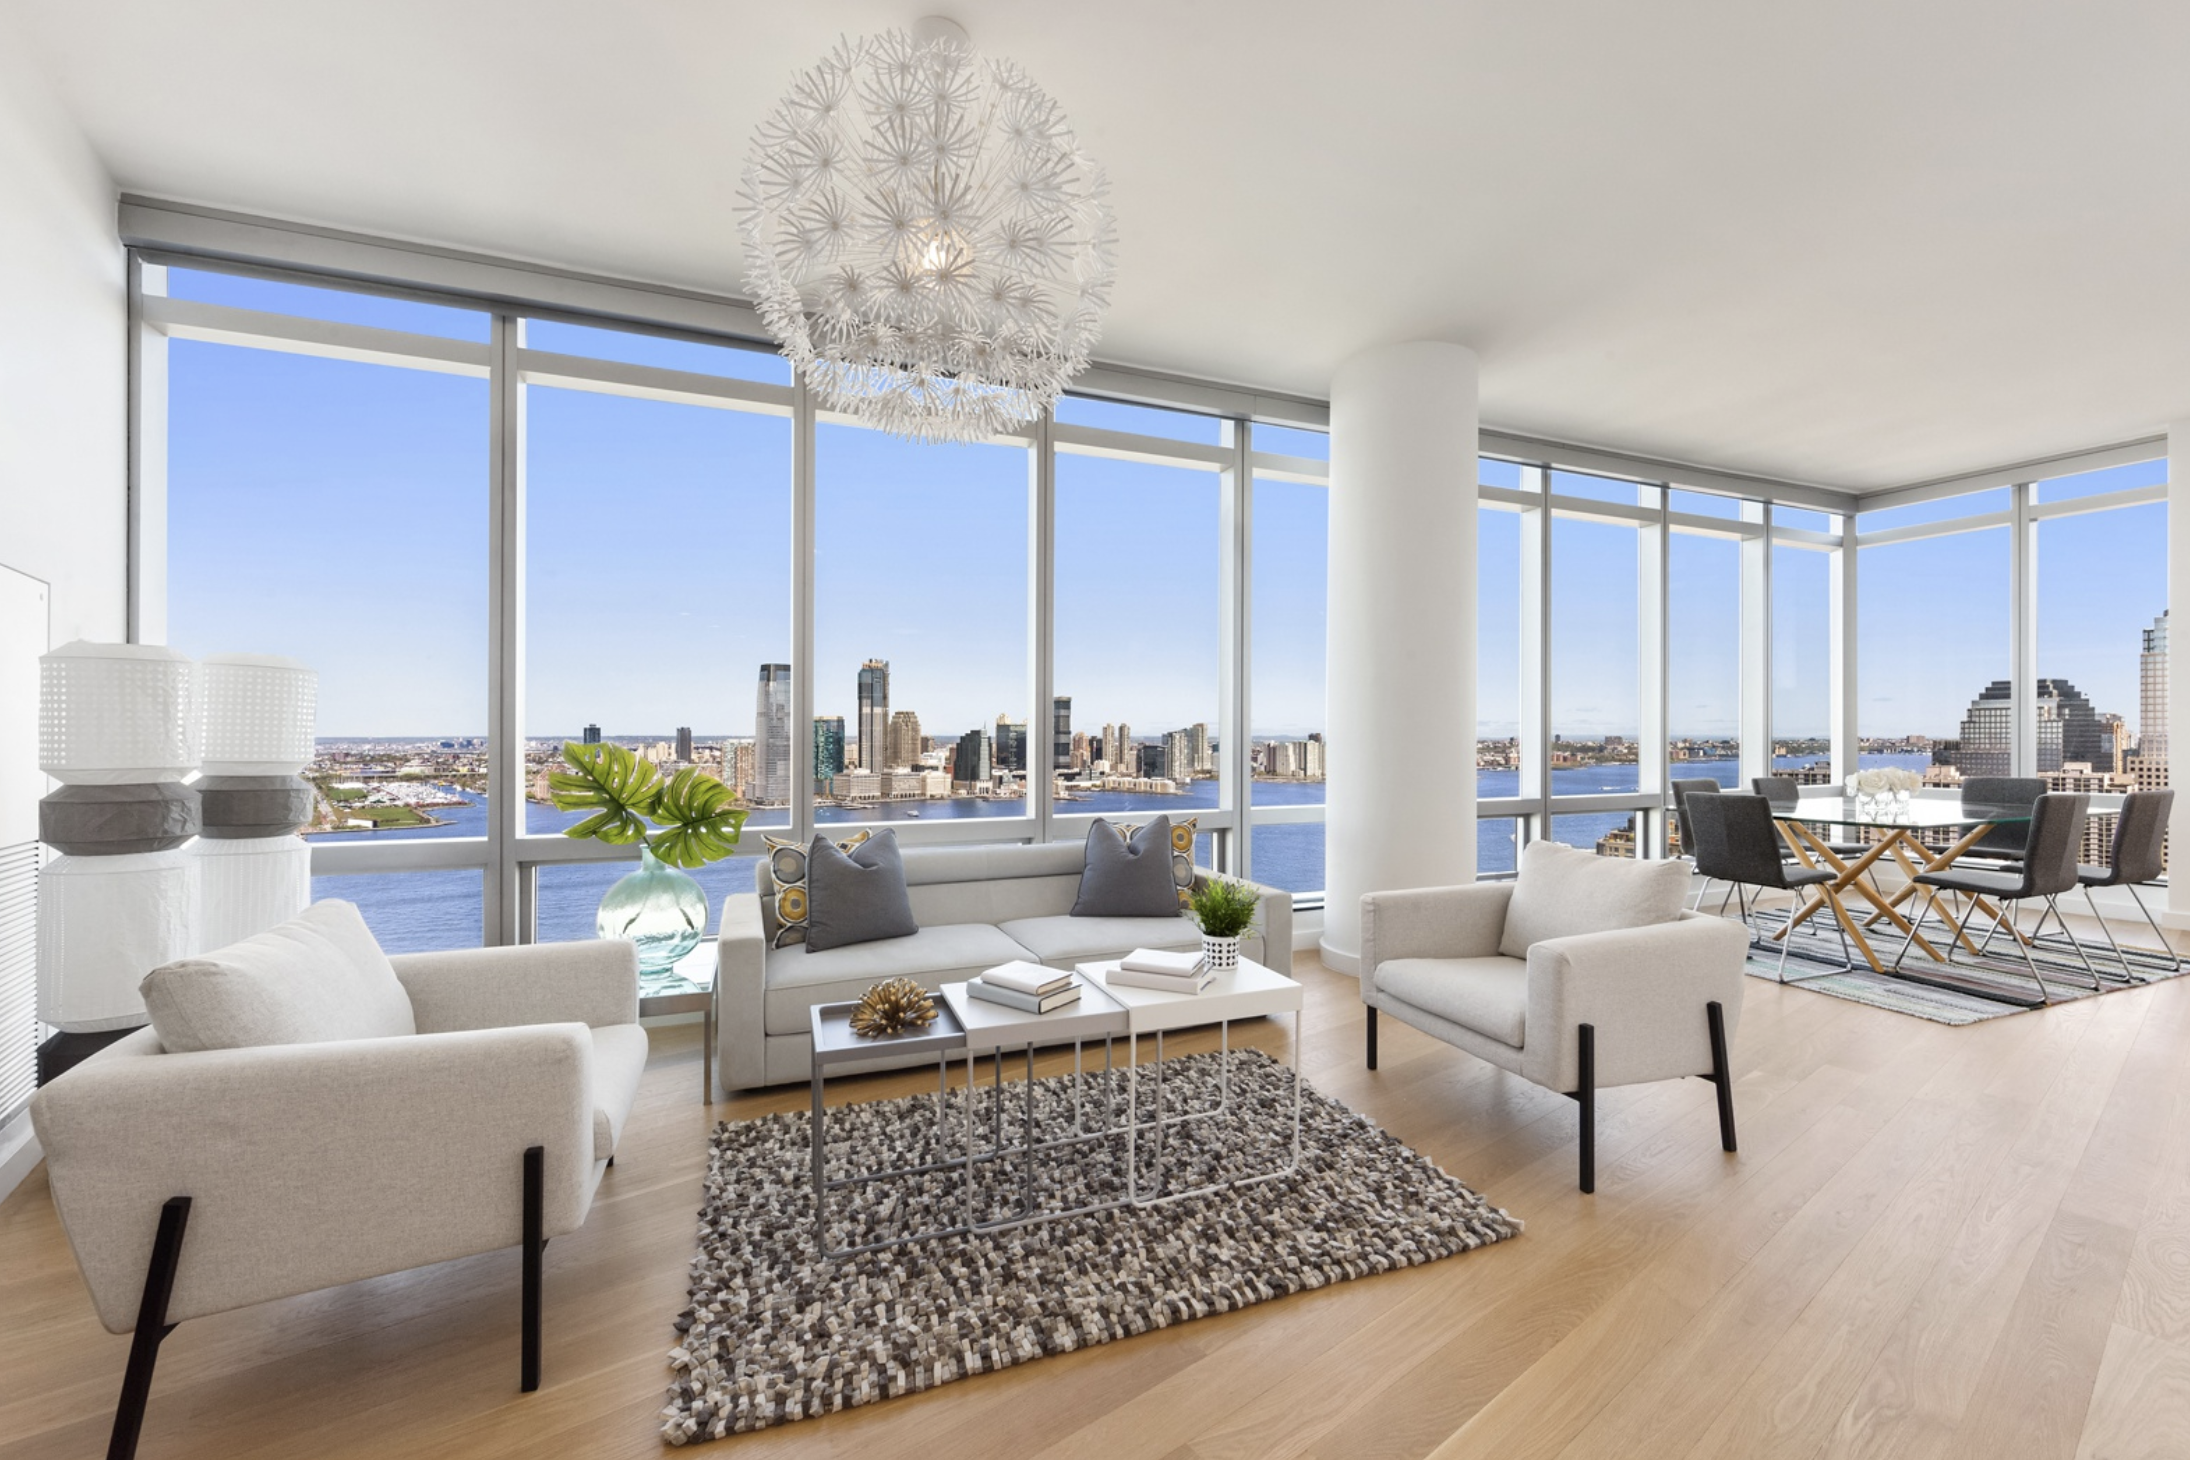 10 WEST STREET, PH1A - $3,695,000 // 3 Beds // 3 Baths // 2,000 SQFTStunning Battery Park penthouse with panoramic Hudson River views perched atop The Ritz-Carlton Residence. Everything about this home feels luxurious! You will feel as though you are floating on water with you enter the expansive 32-foot living room, which is wrapped in wall-to-wall floor-to-ceiling windows with northern and western exposure and unobstructed and protected views of the Hudson River.